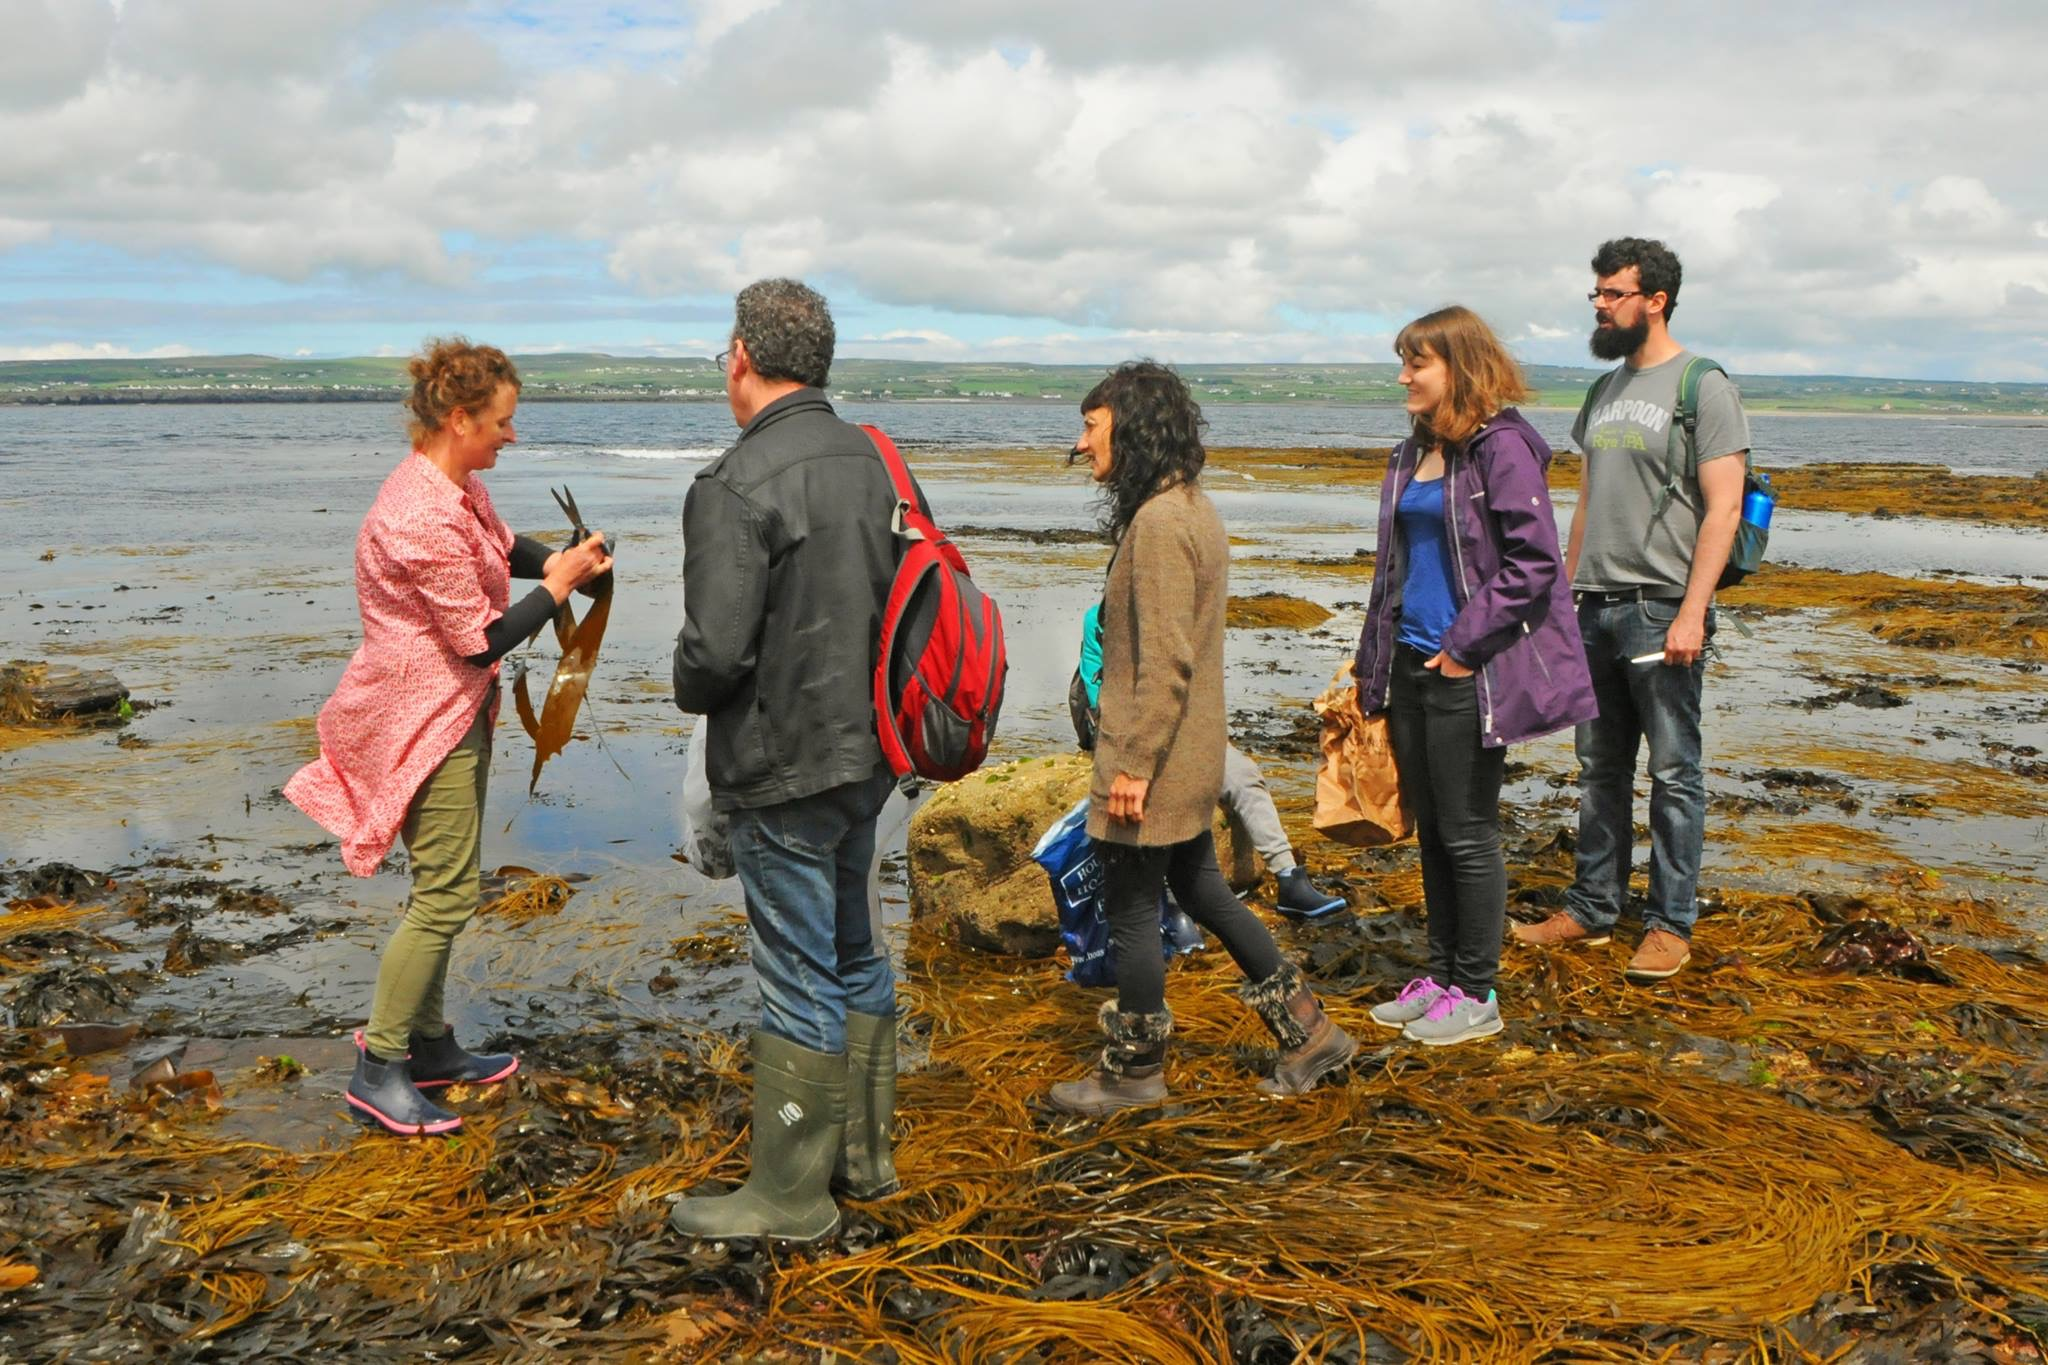 Foodie_things_to_do_in_the_burren-properfood.ie